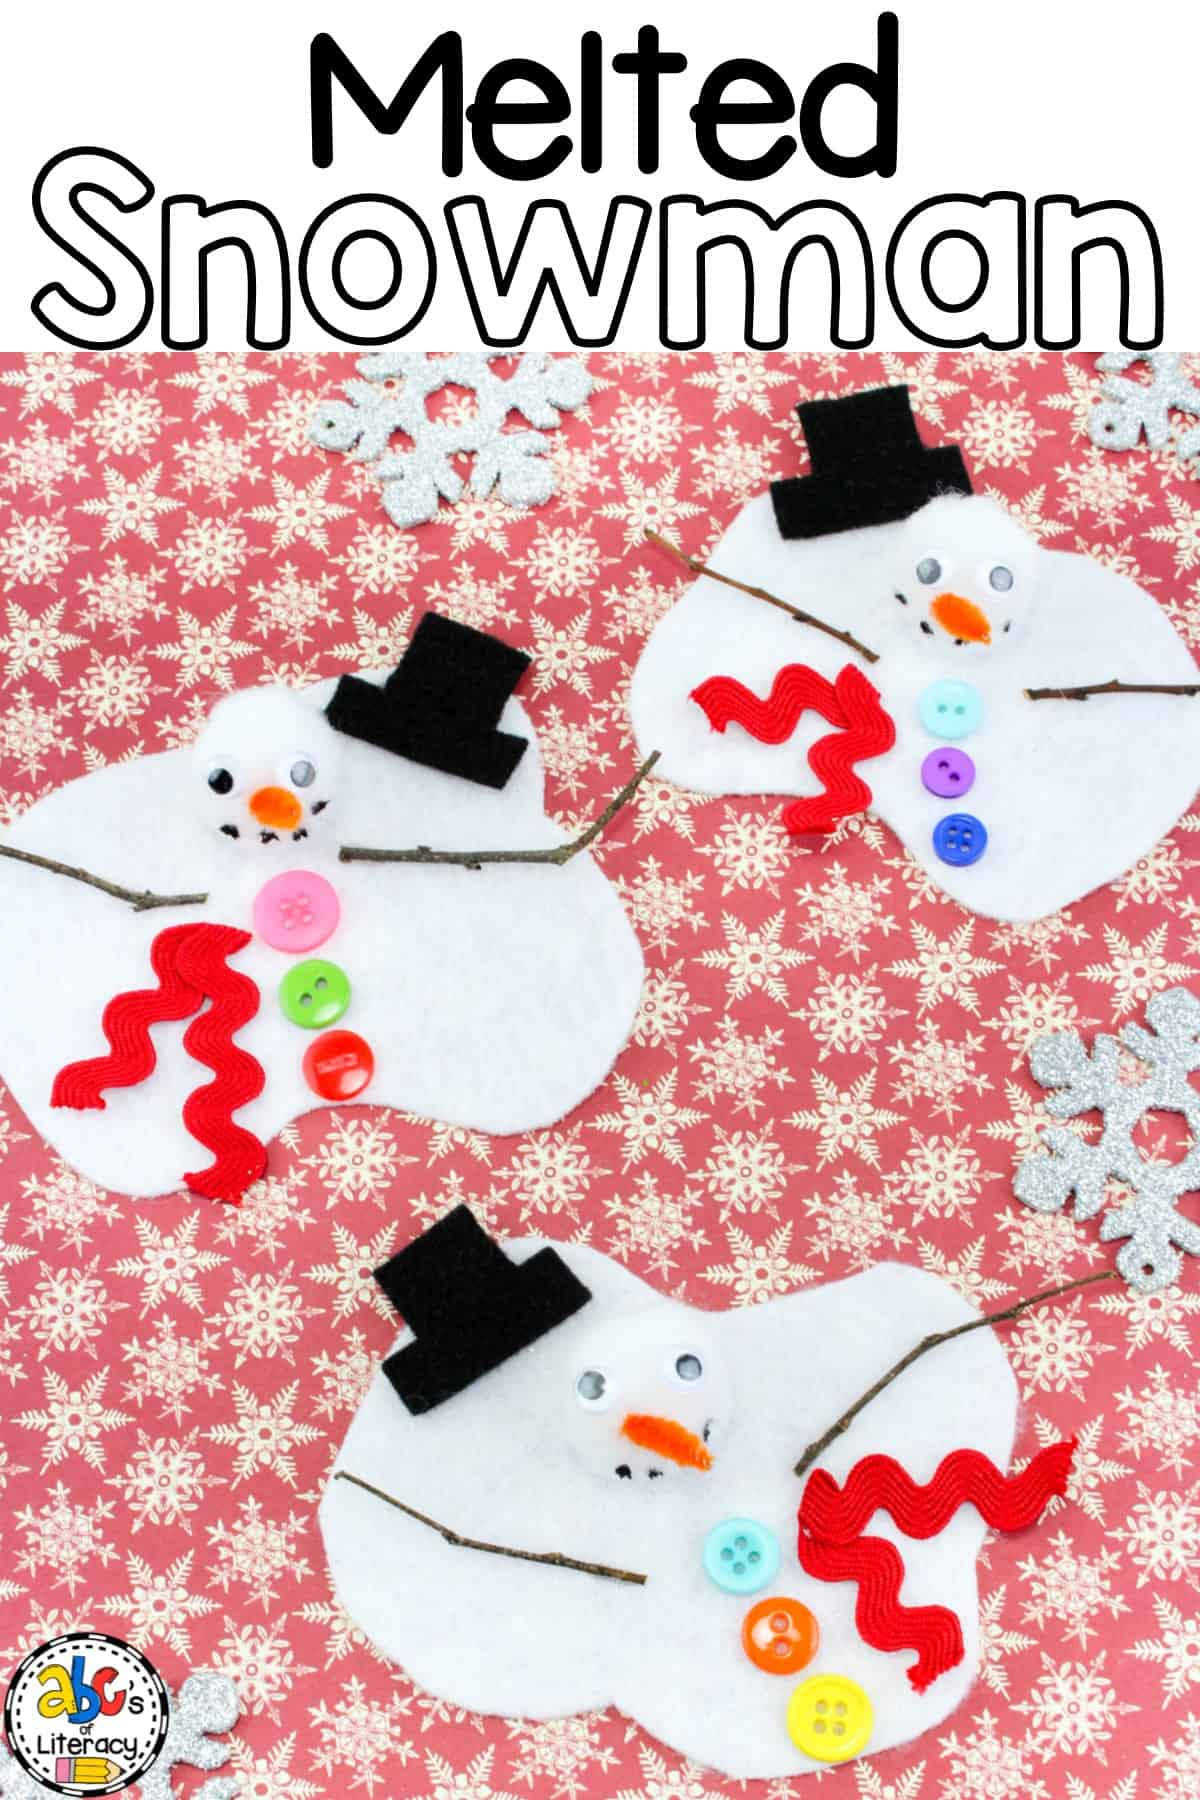 melted snowman craft activity for winter fun